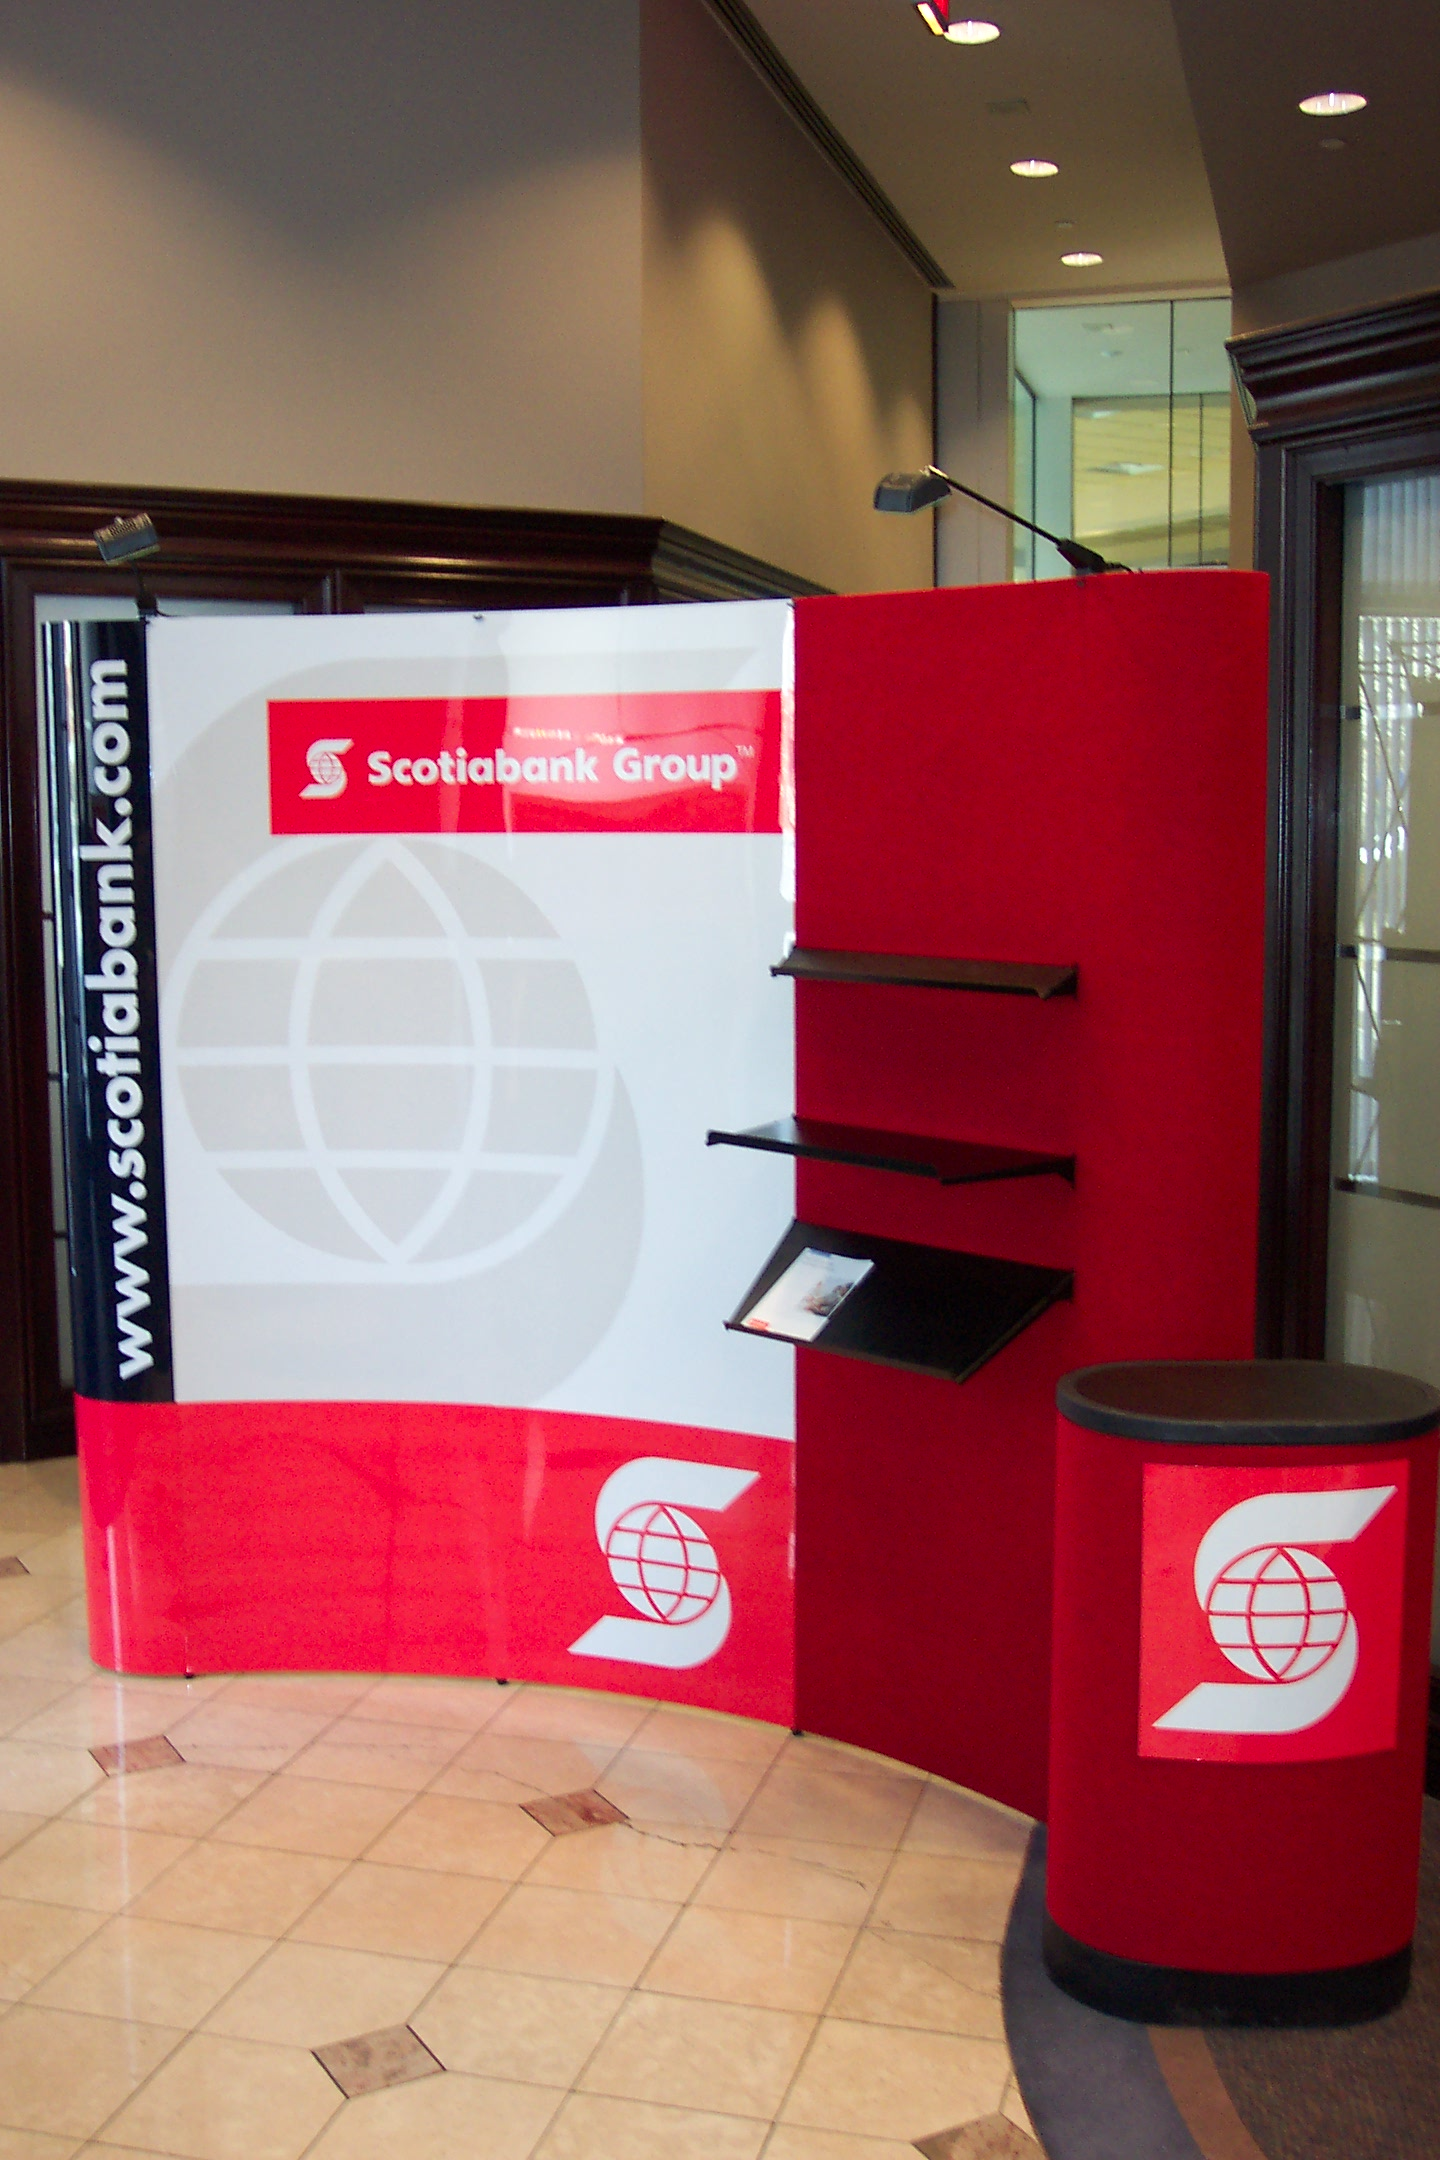 Scotiabank Pop-Up Display